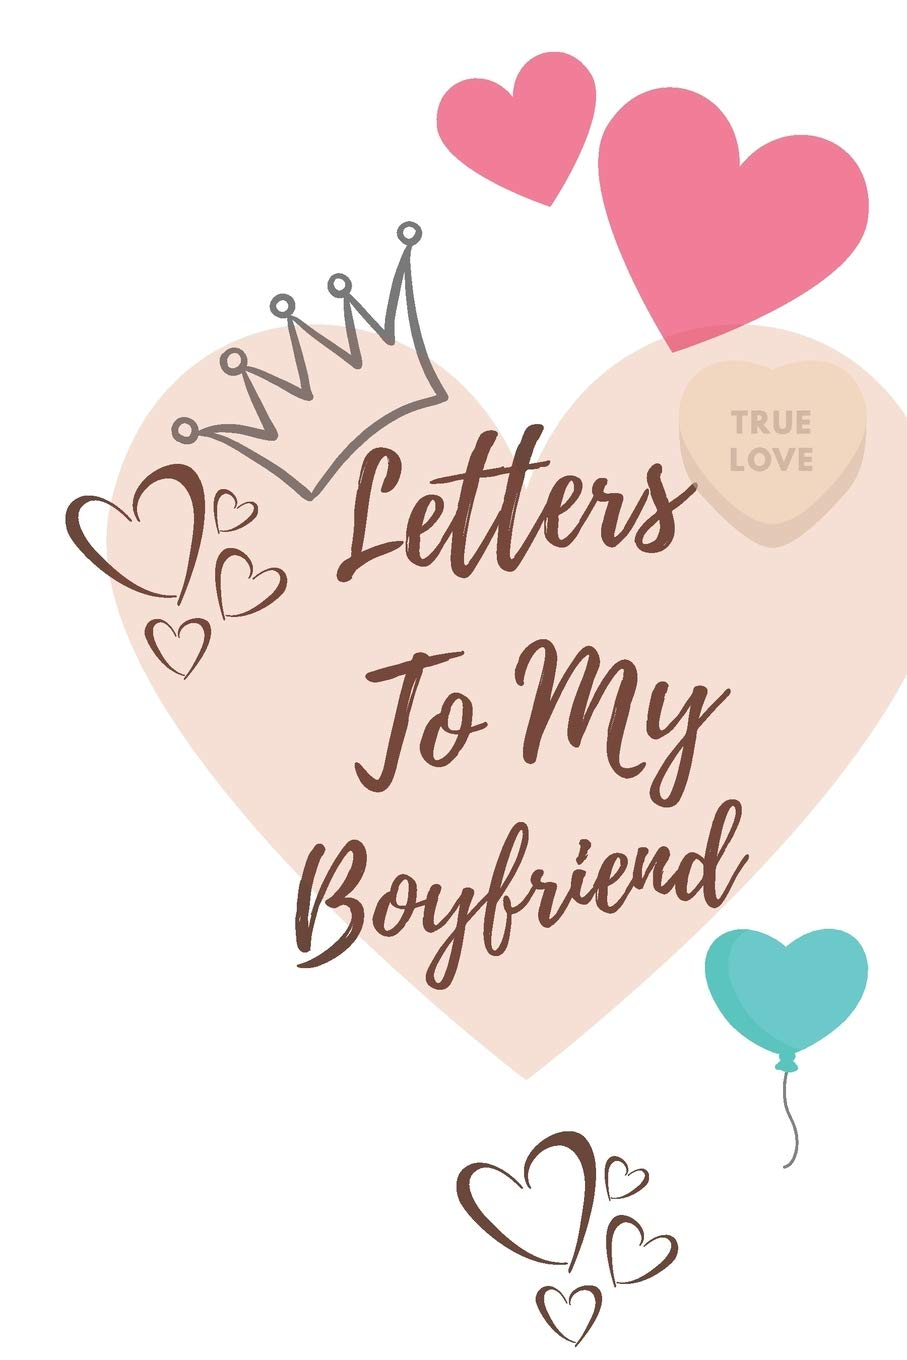 Love Letter Your Boyfriend from images-na.ssl-images-amazon.com